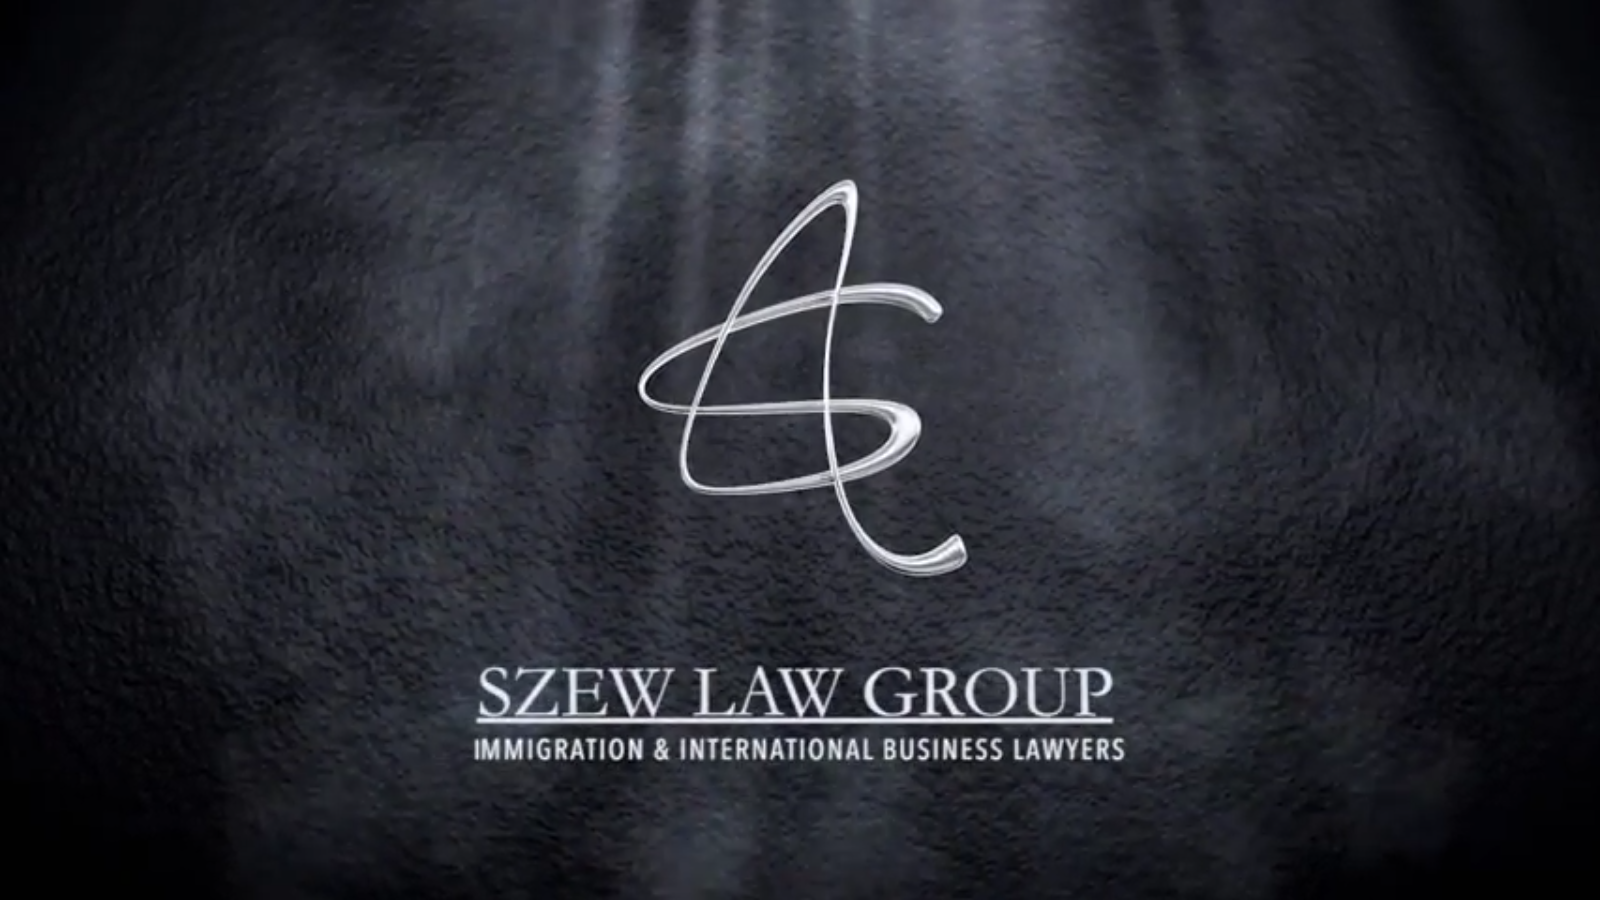 Szew Law Group - International business and immigration solutions